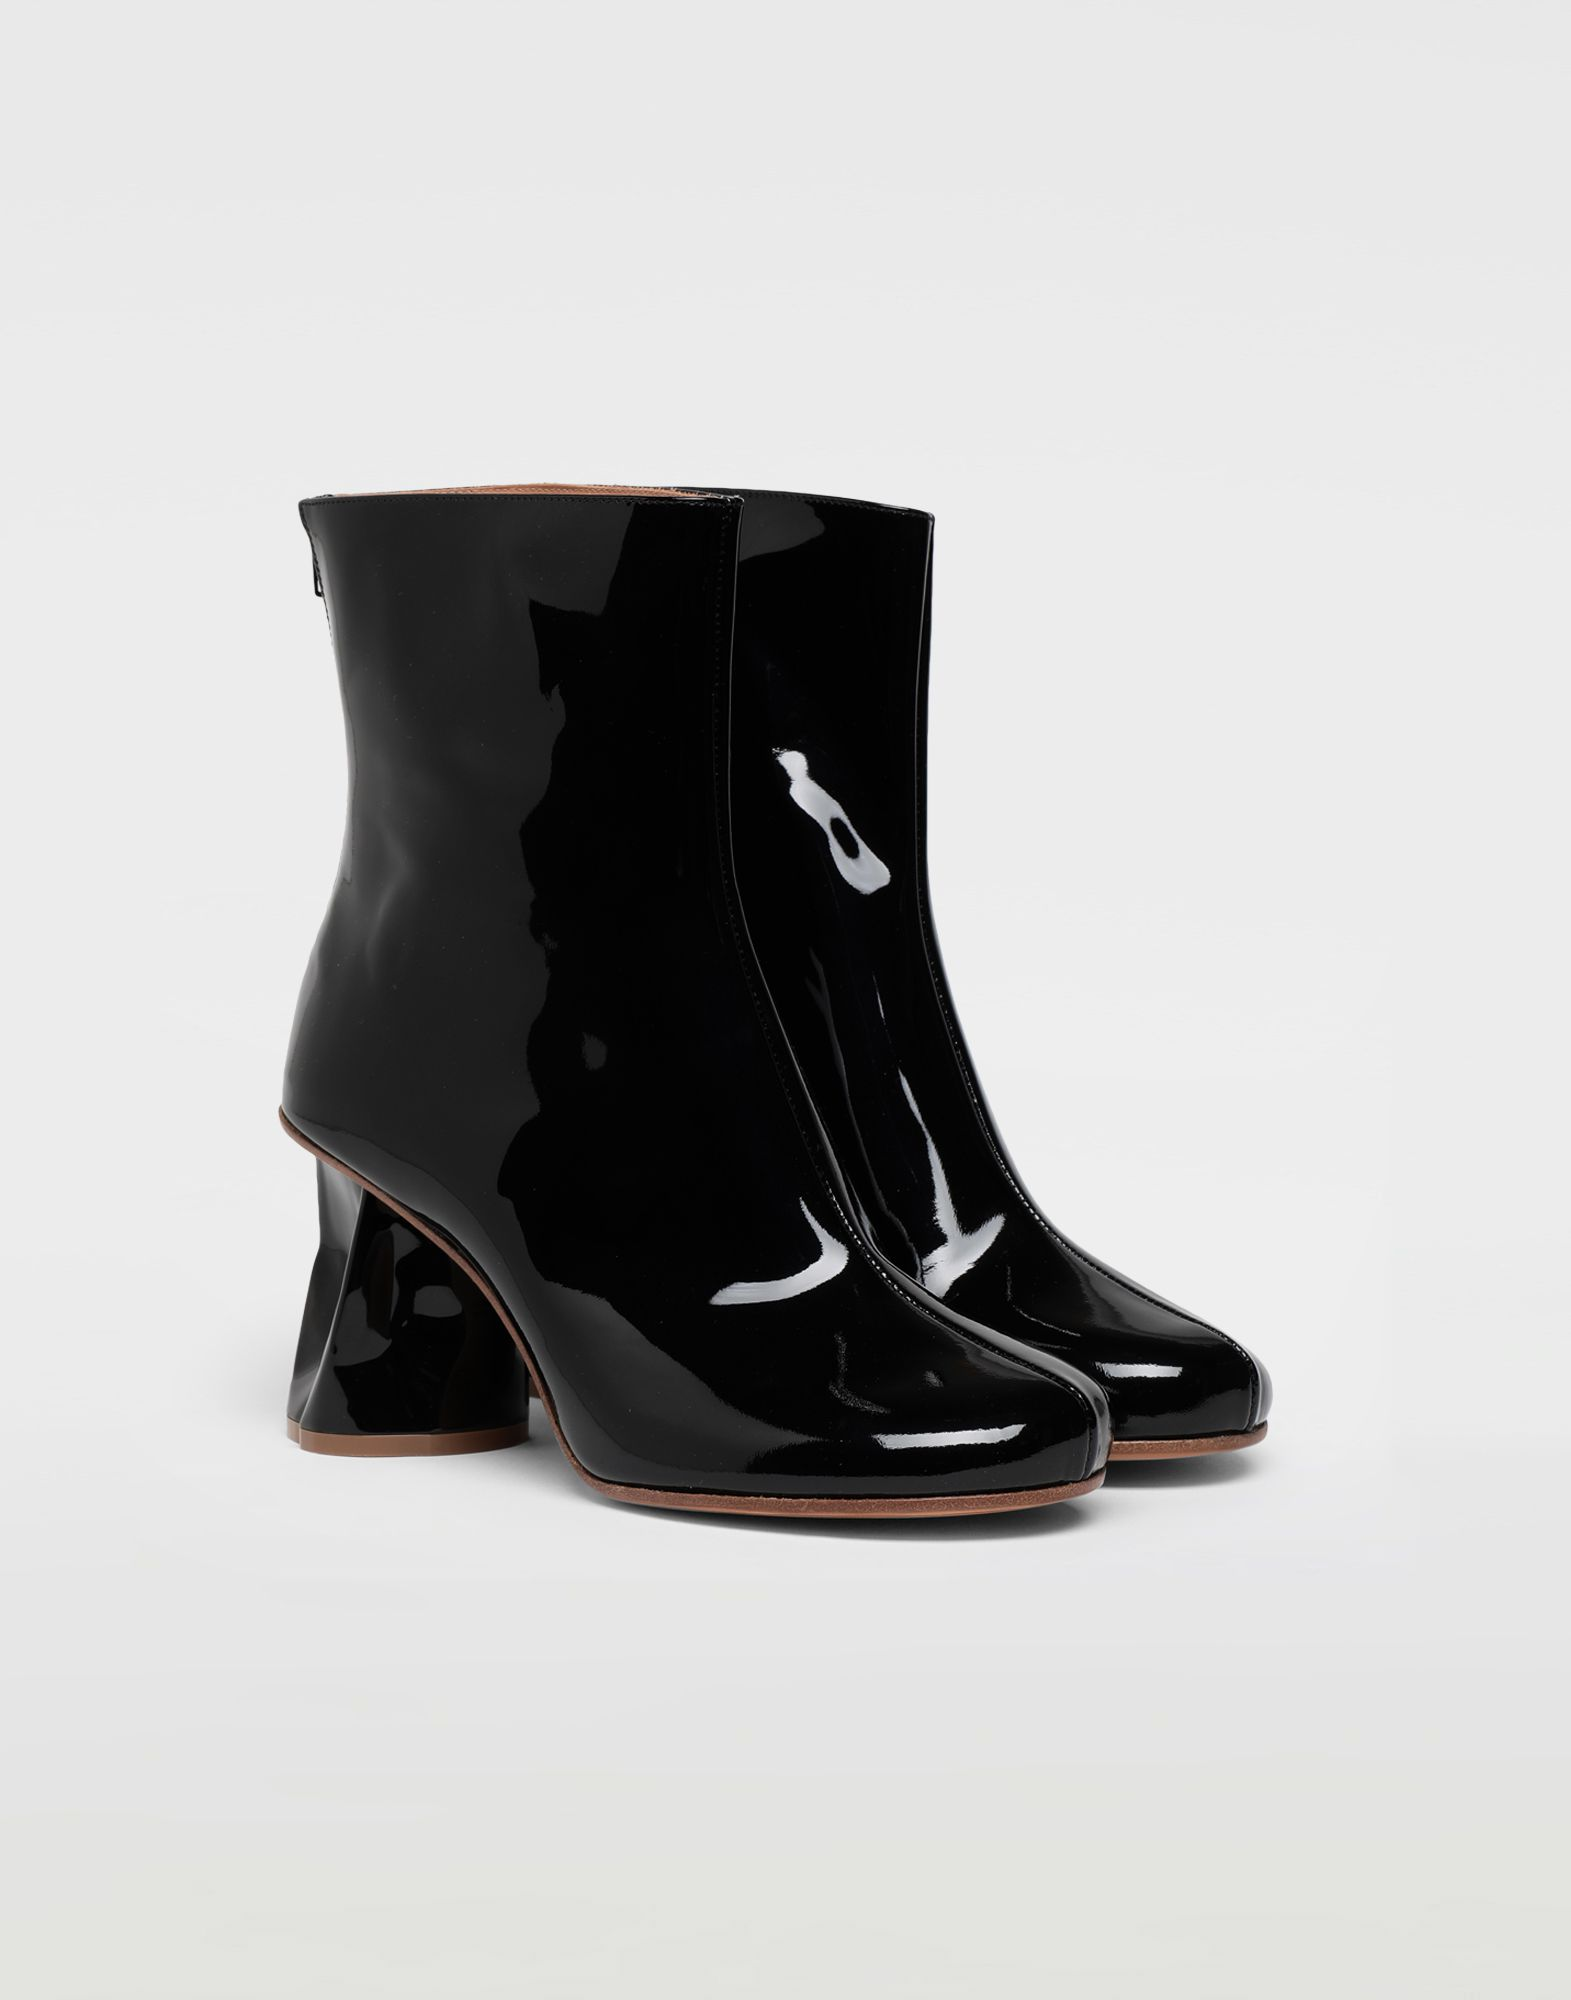 MAISON MARGIELA Crushed heel ankle boots Ankle boots Woman r